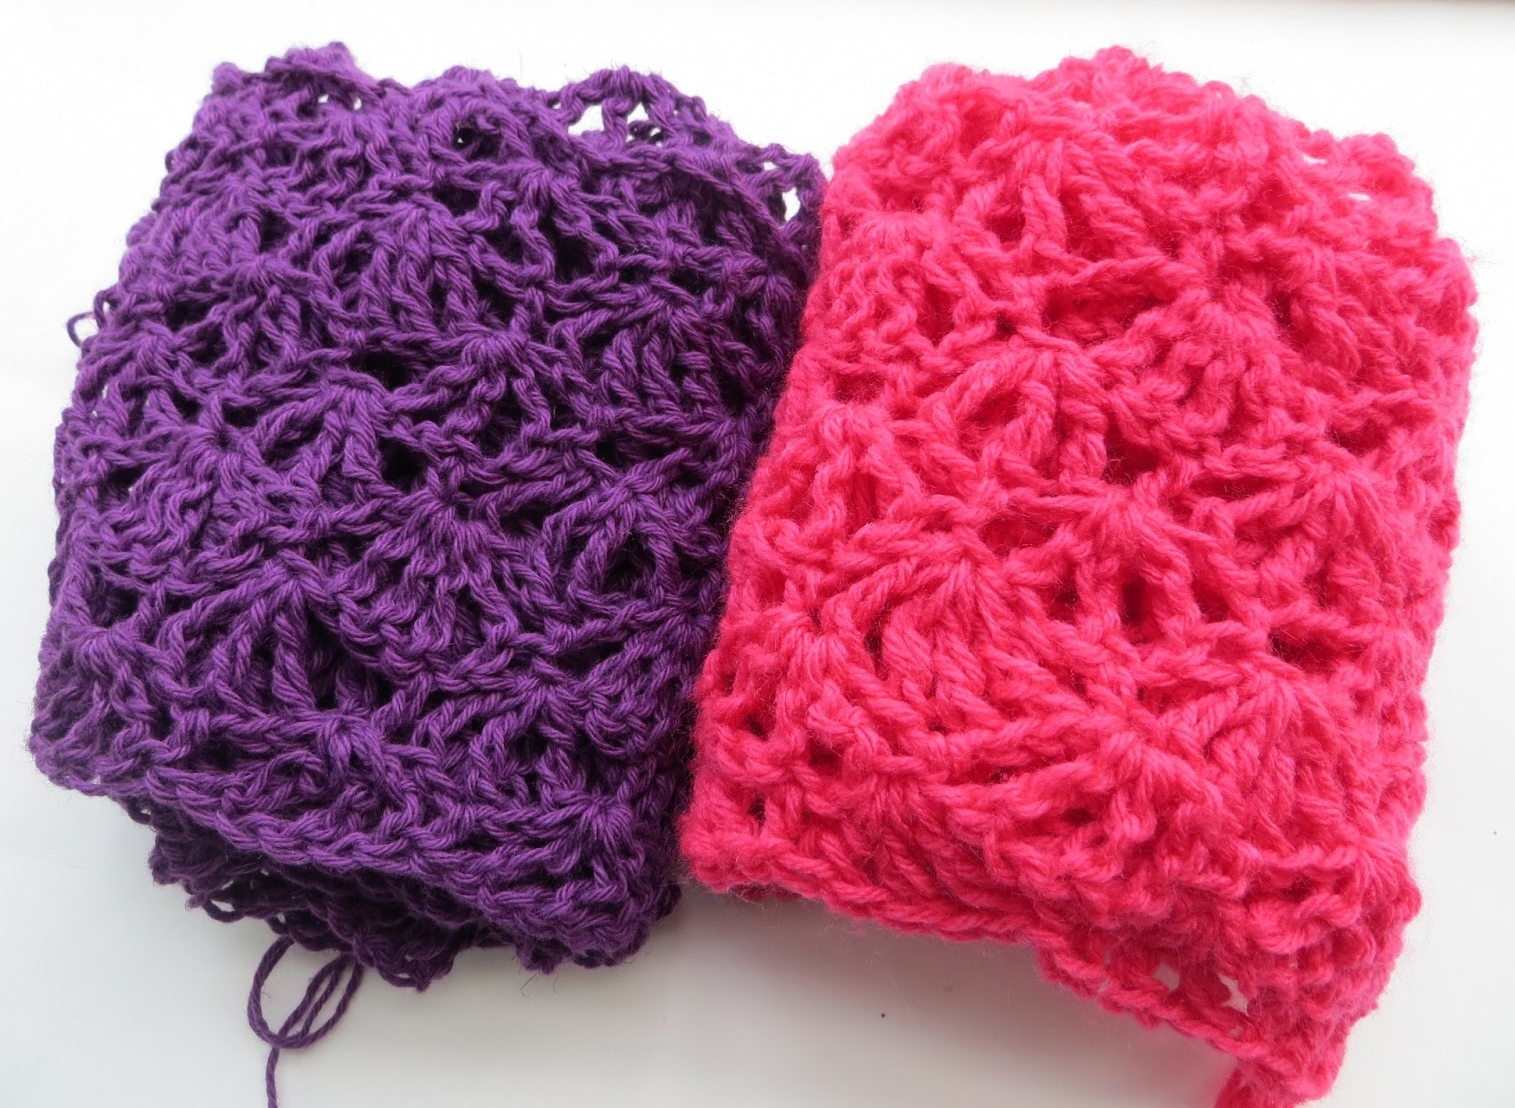 Crocheting Free Patterns : Alana Lacy Scarf, Free Crochet Pattern